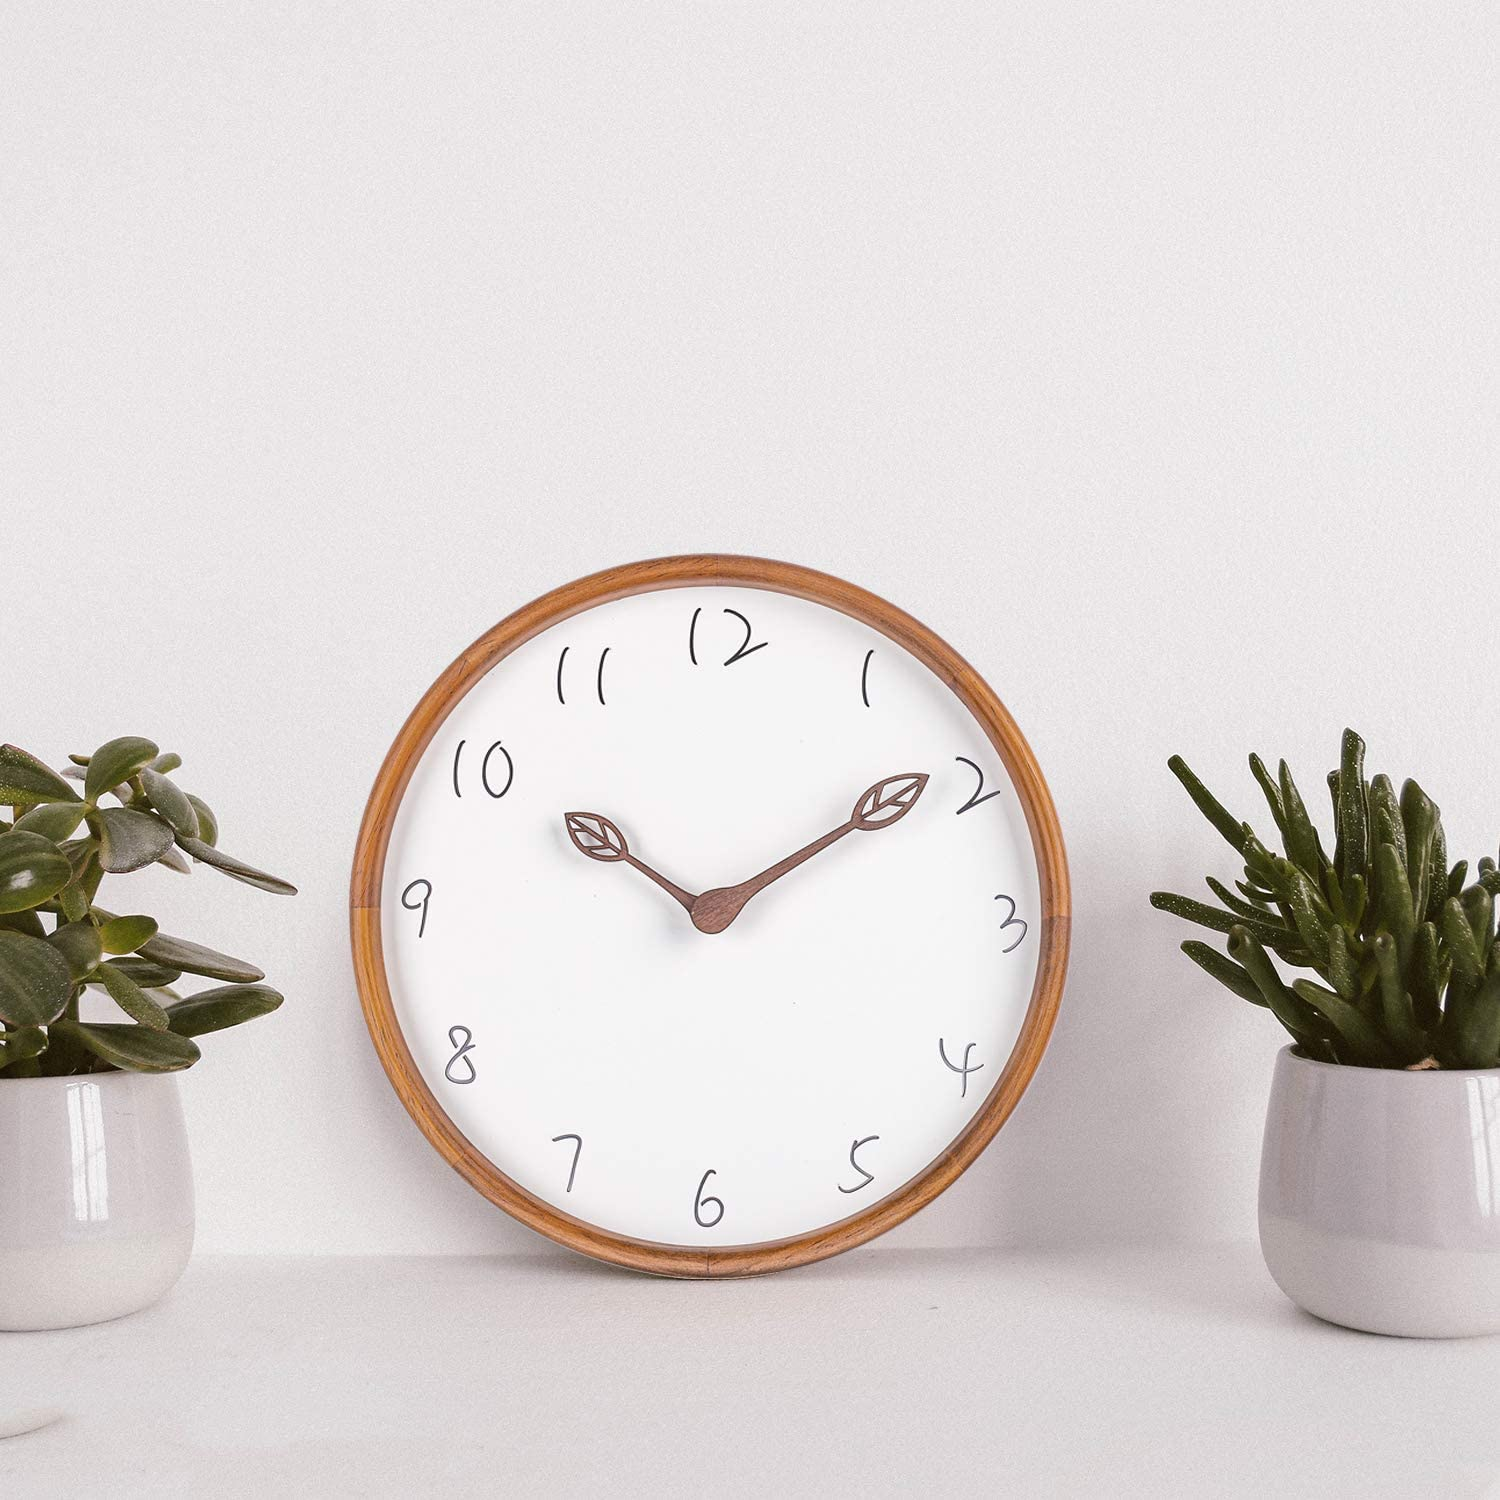 BEW Wooden Wall Clock, Laser Engraved Handwriting Fonts Decorative Wall Clock, Silent Non-Ticking Hanging Clock for Bedroom, Living Room, Kitchen, Cafe, Office - 12 Inch, Leafs Hands